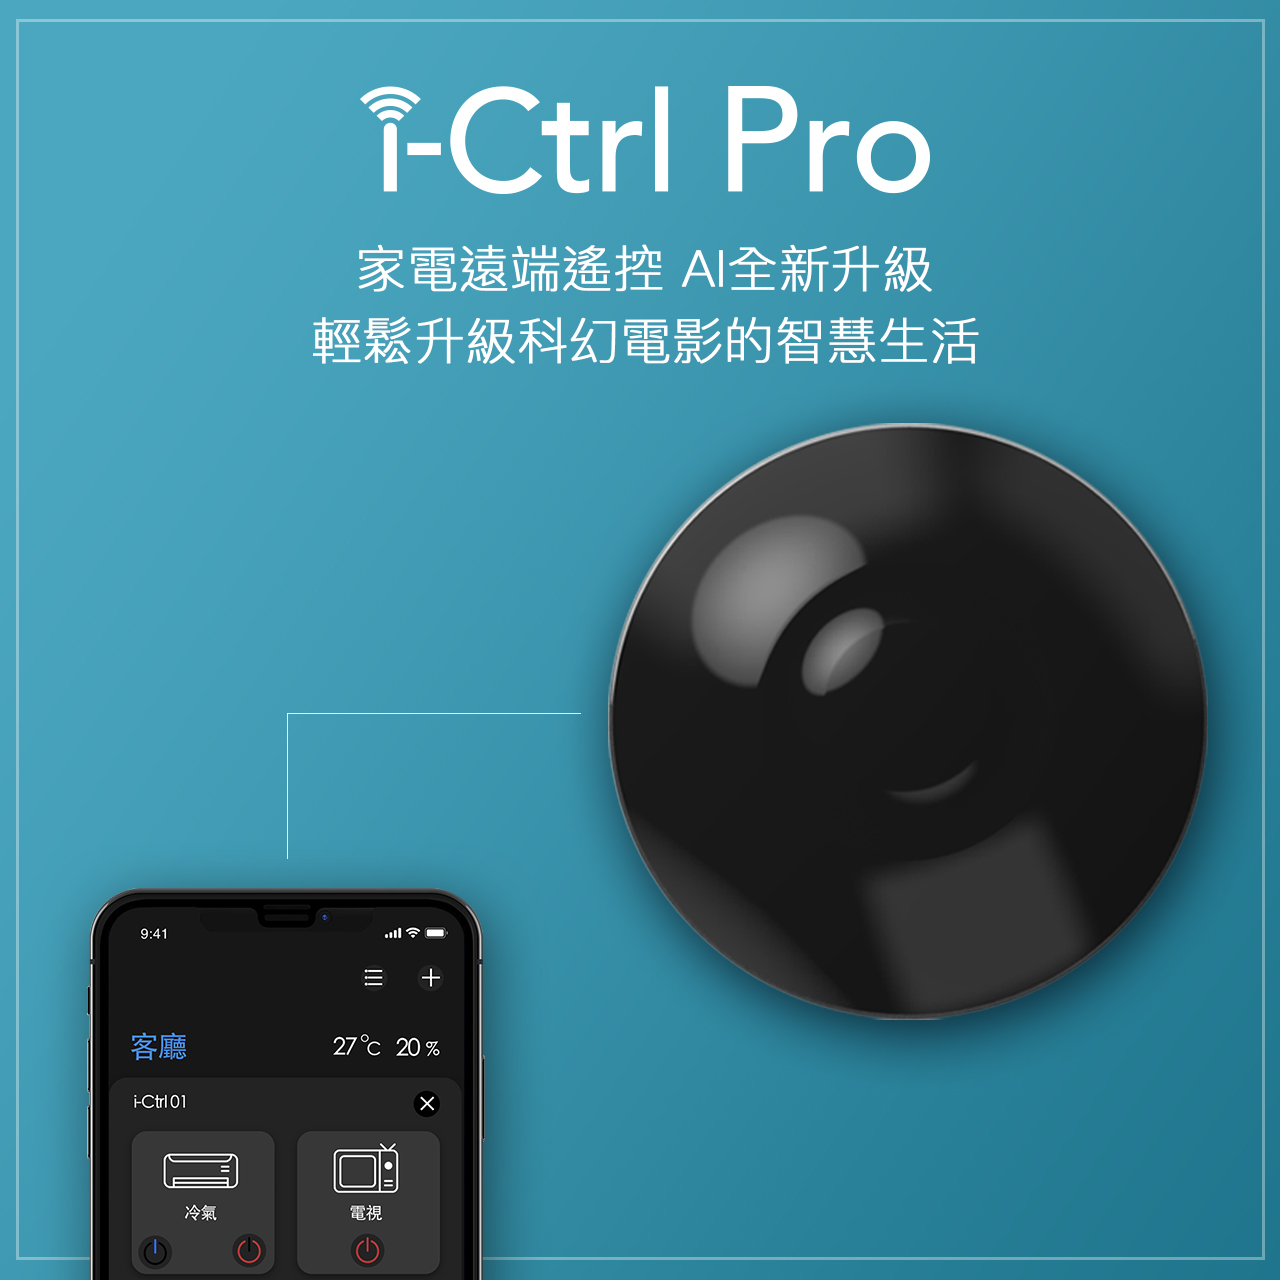 aifa i-Ctrl Pro smart wifi remote